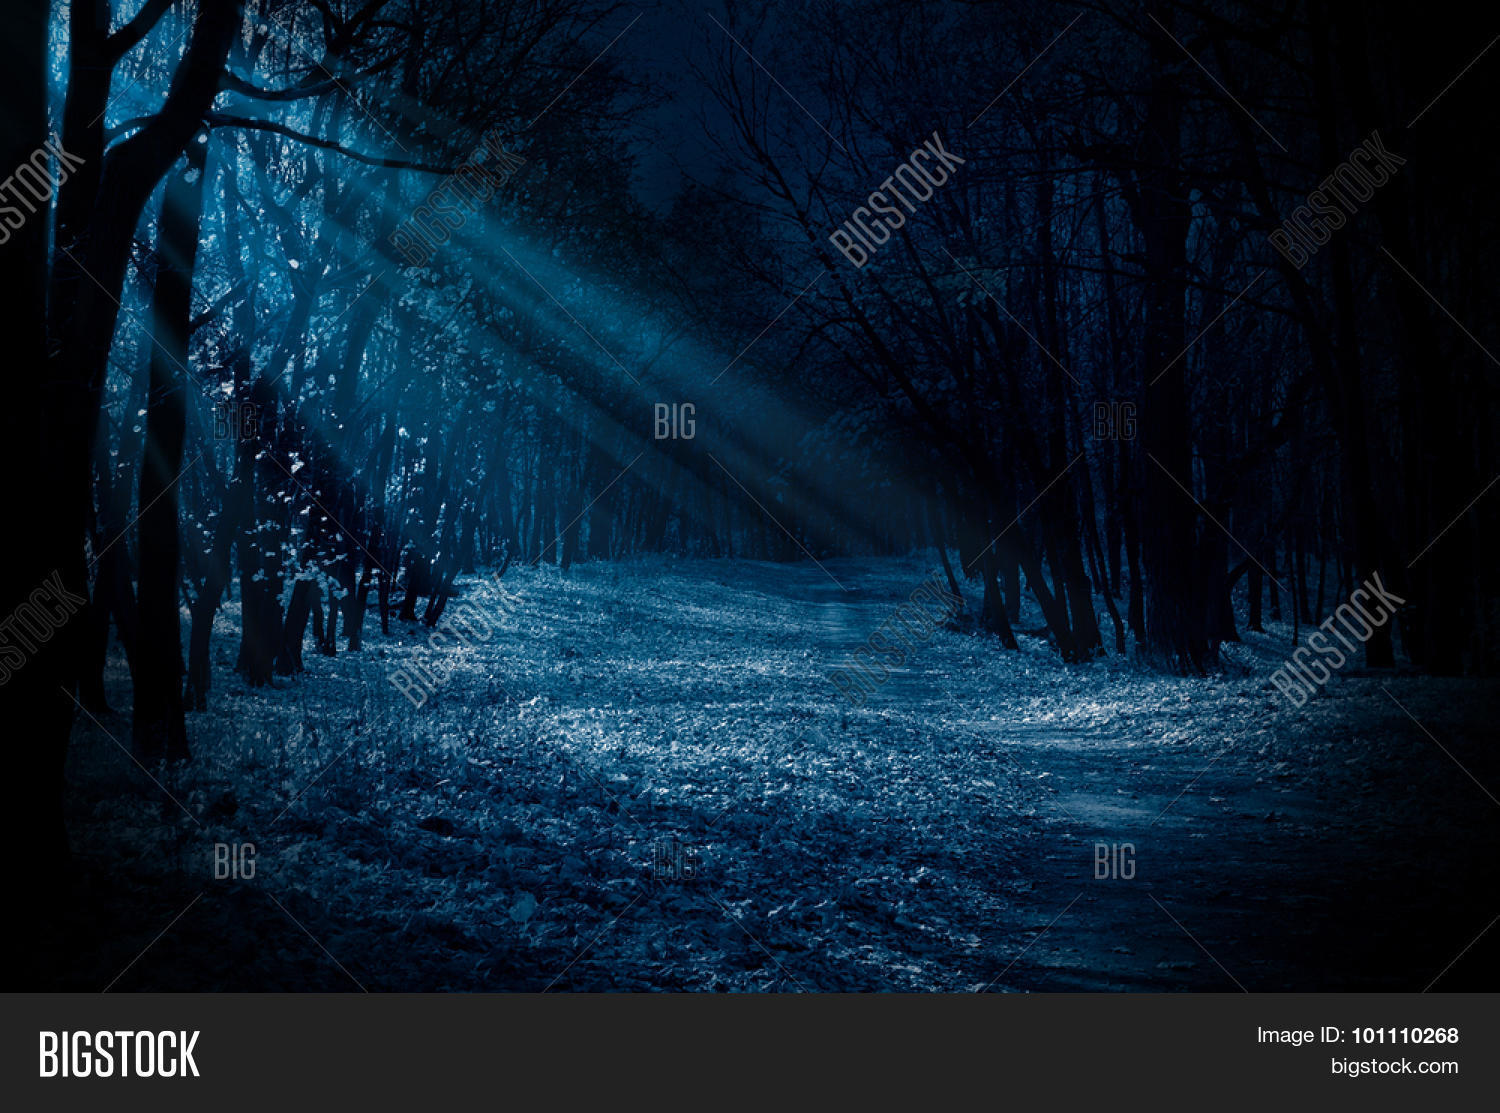 night forest moonlight image photo free trial bigstock